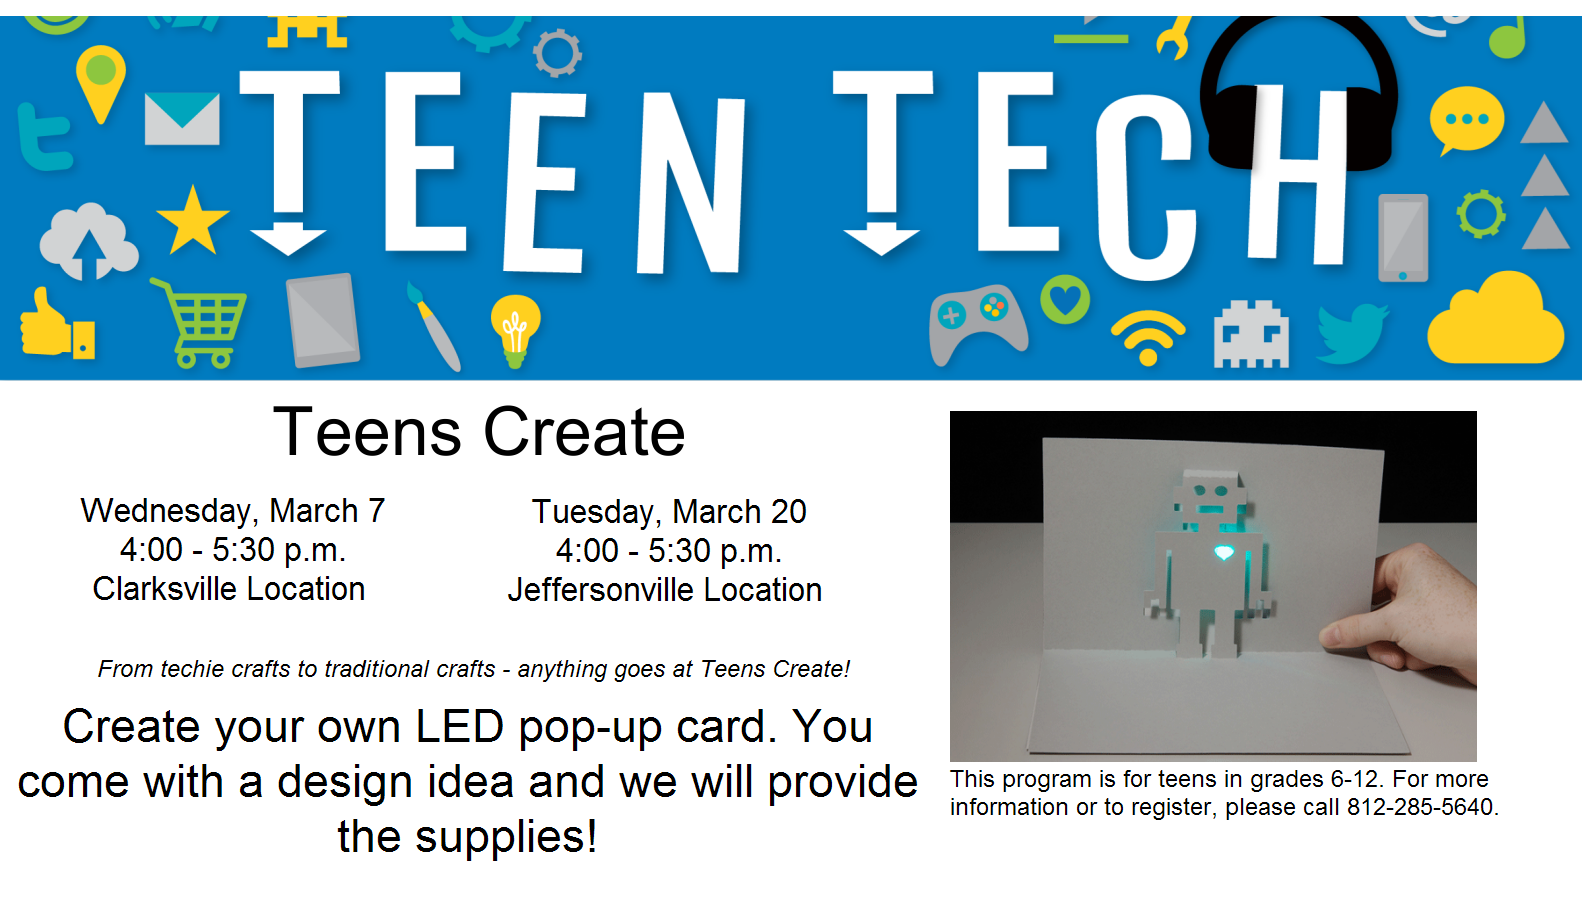 Teens Create: LED pop-up card